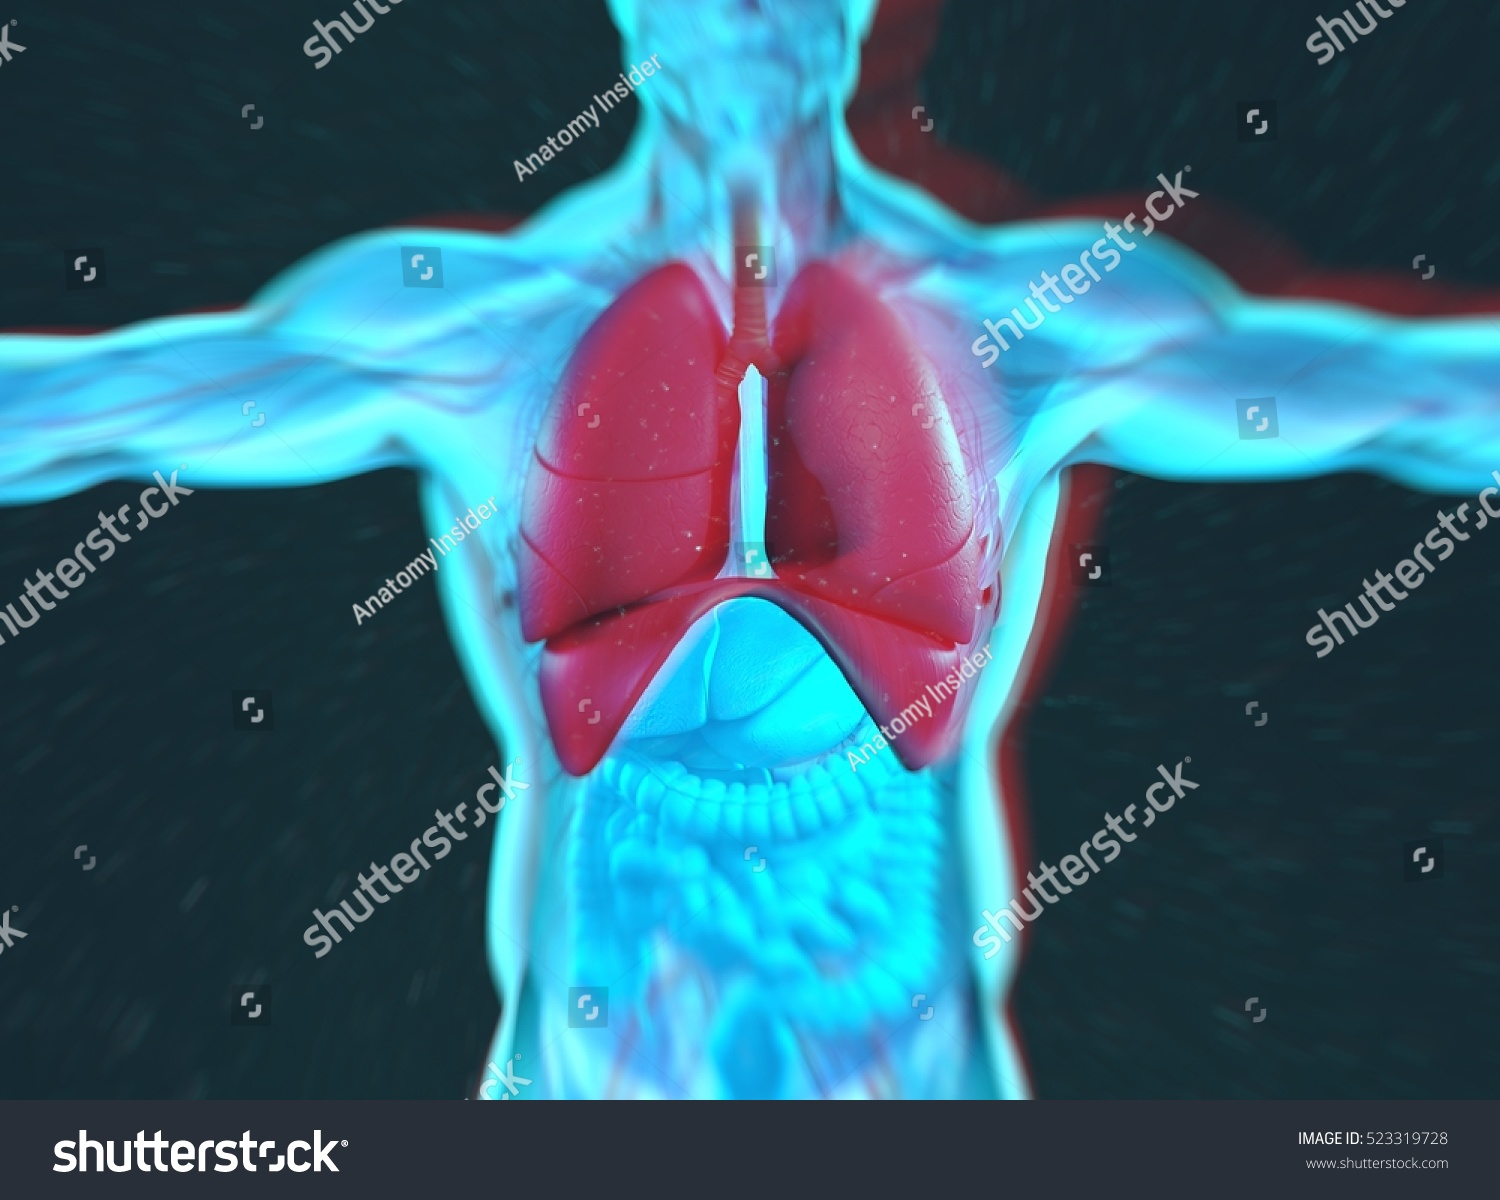 Royalty Free Stock Illustration Of Human Anatomy Lungs Lung Cancer